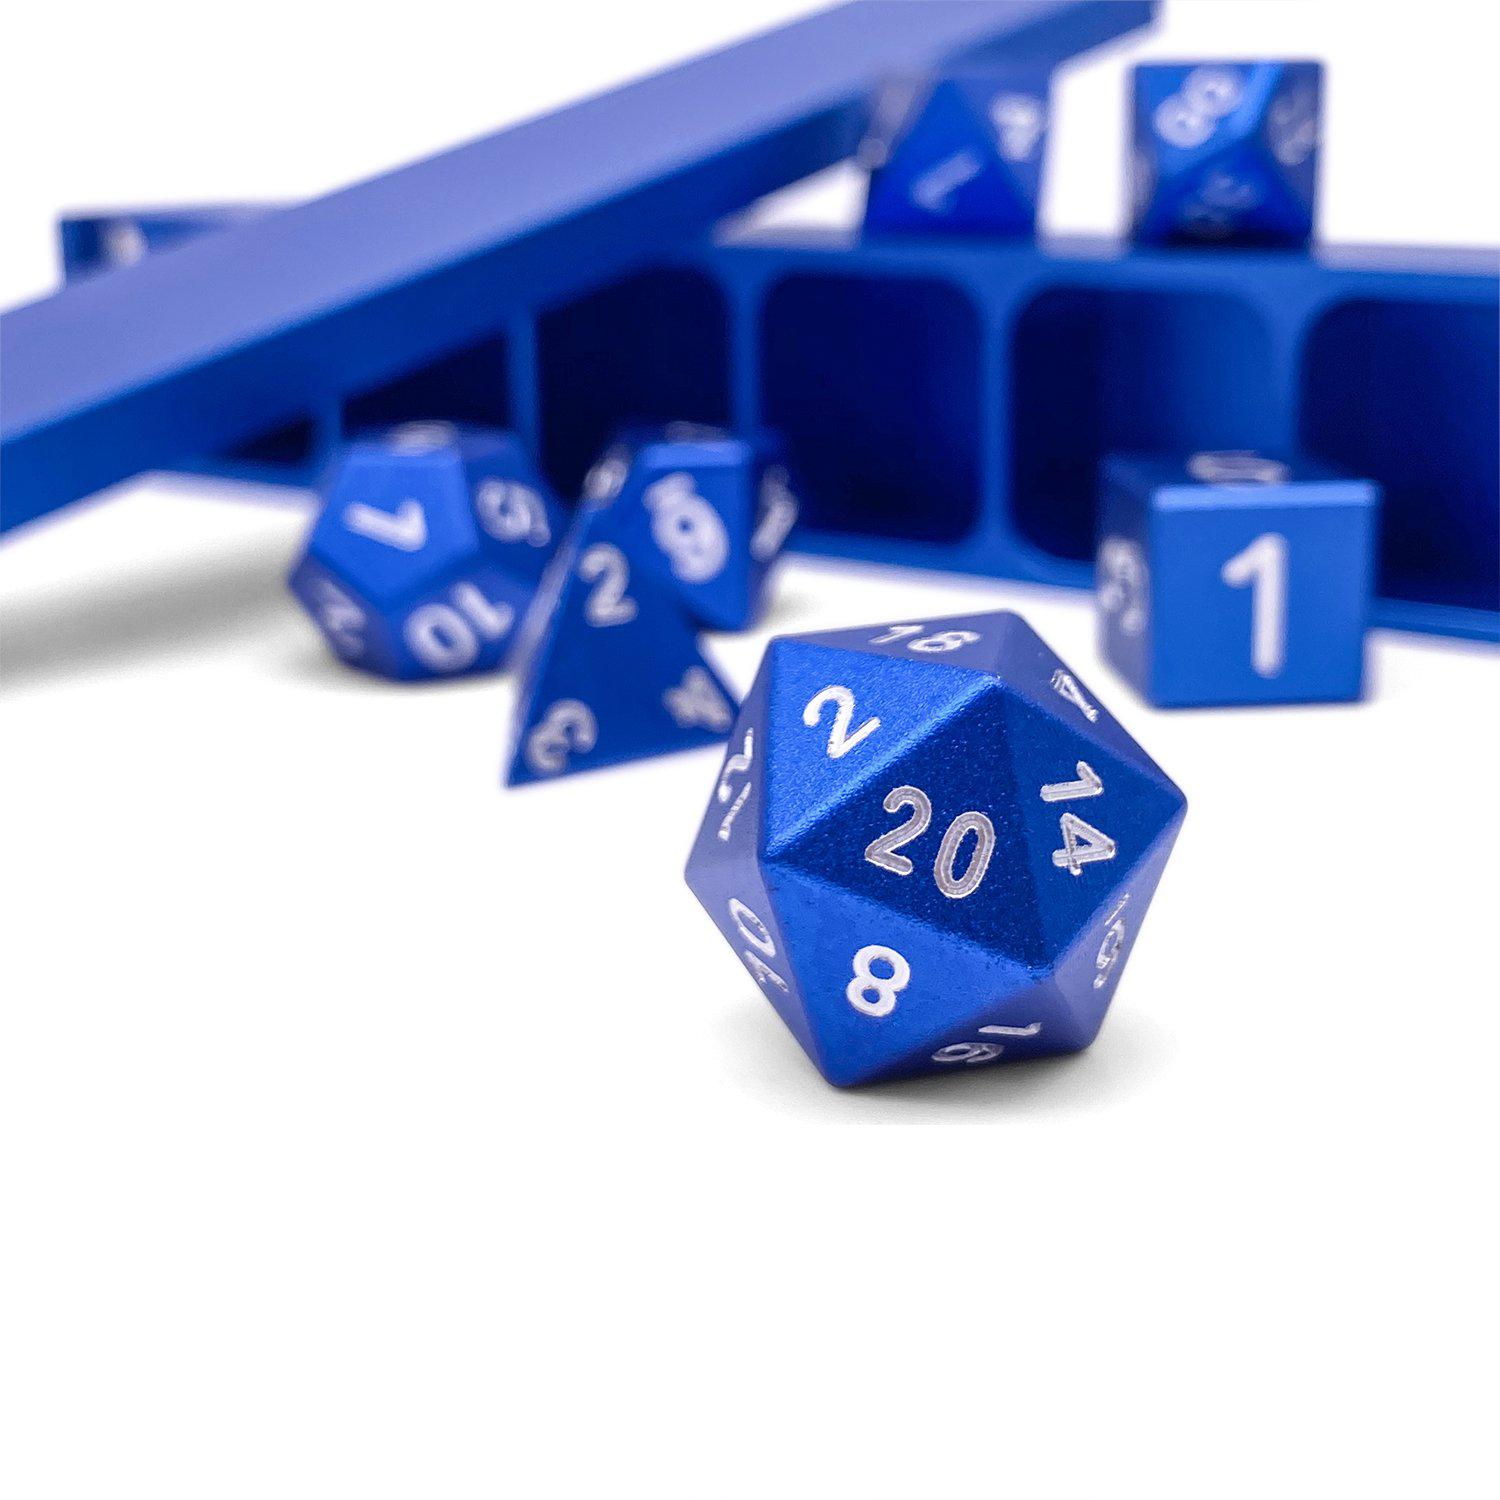 Noble Blue - Precision CNC Aluminum Dice Set with Dice Vault